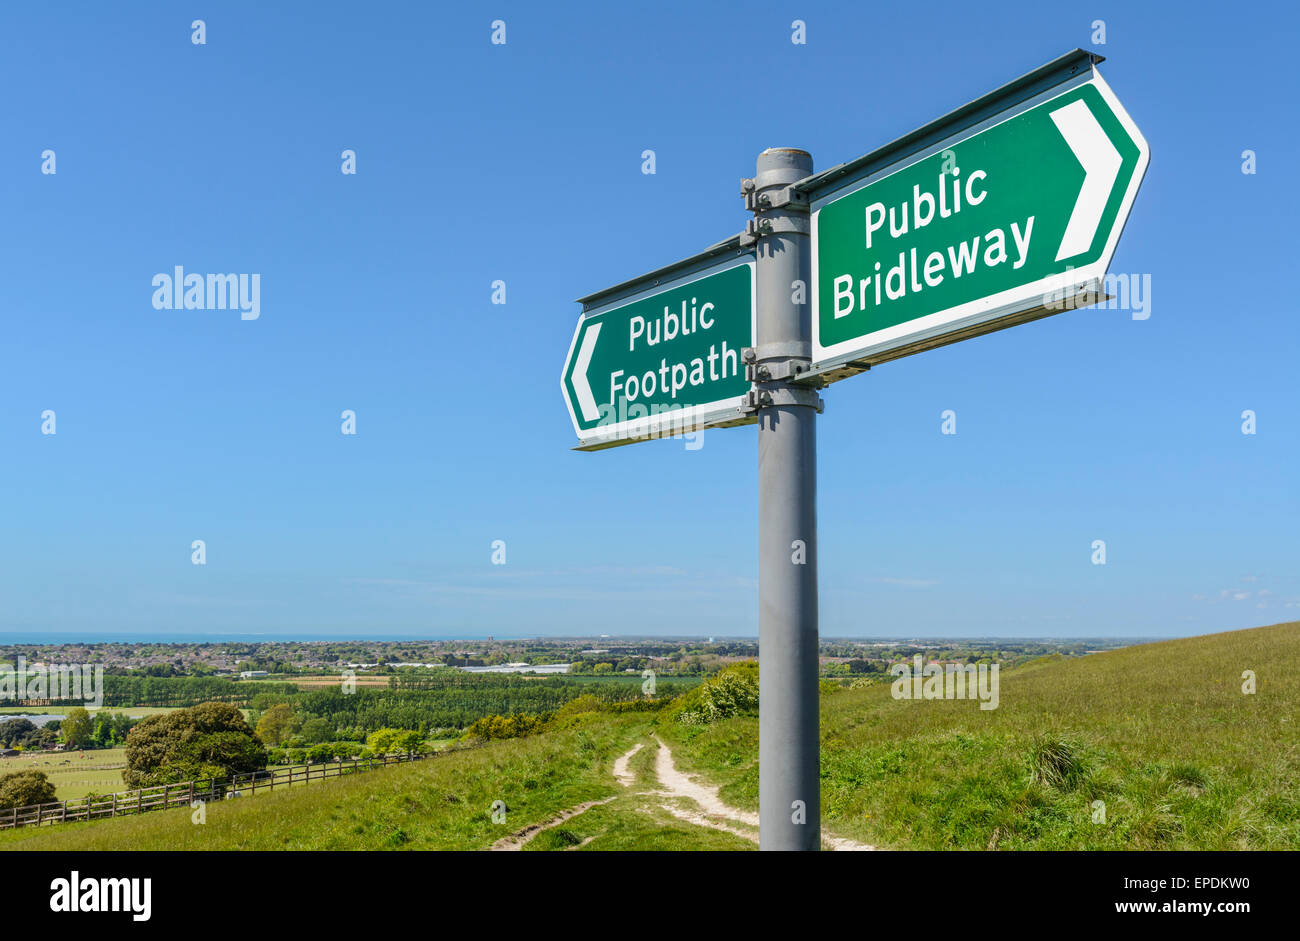 Public Footpath and Public Bridleway sign on a hill at Highdown in West Sussex, England, UK. - Stock Image